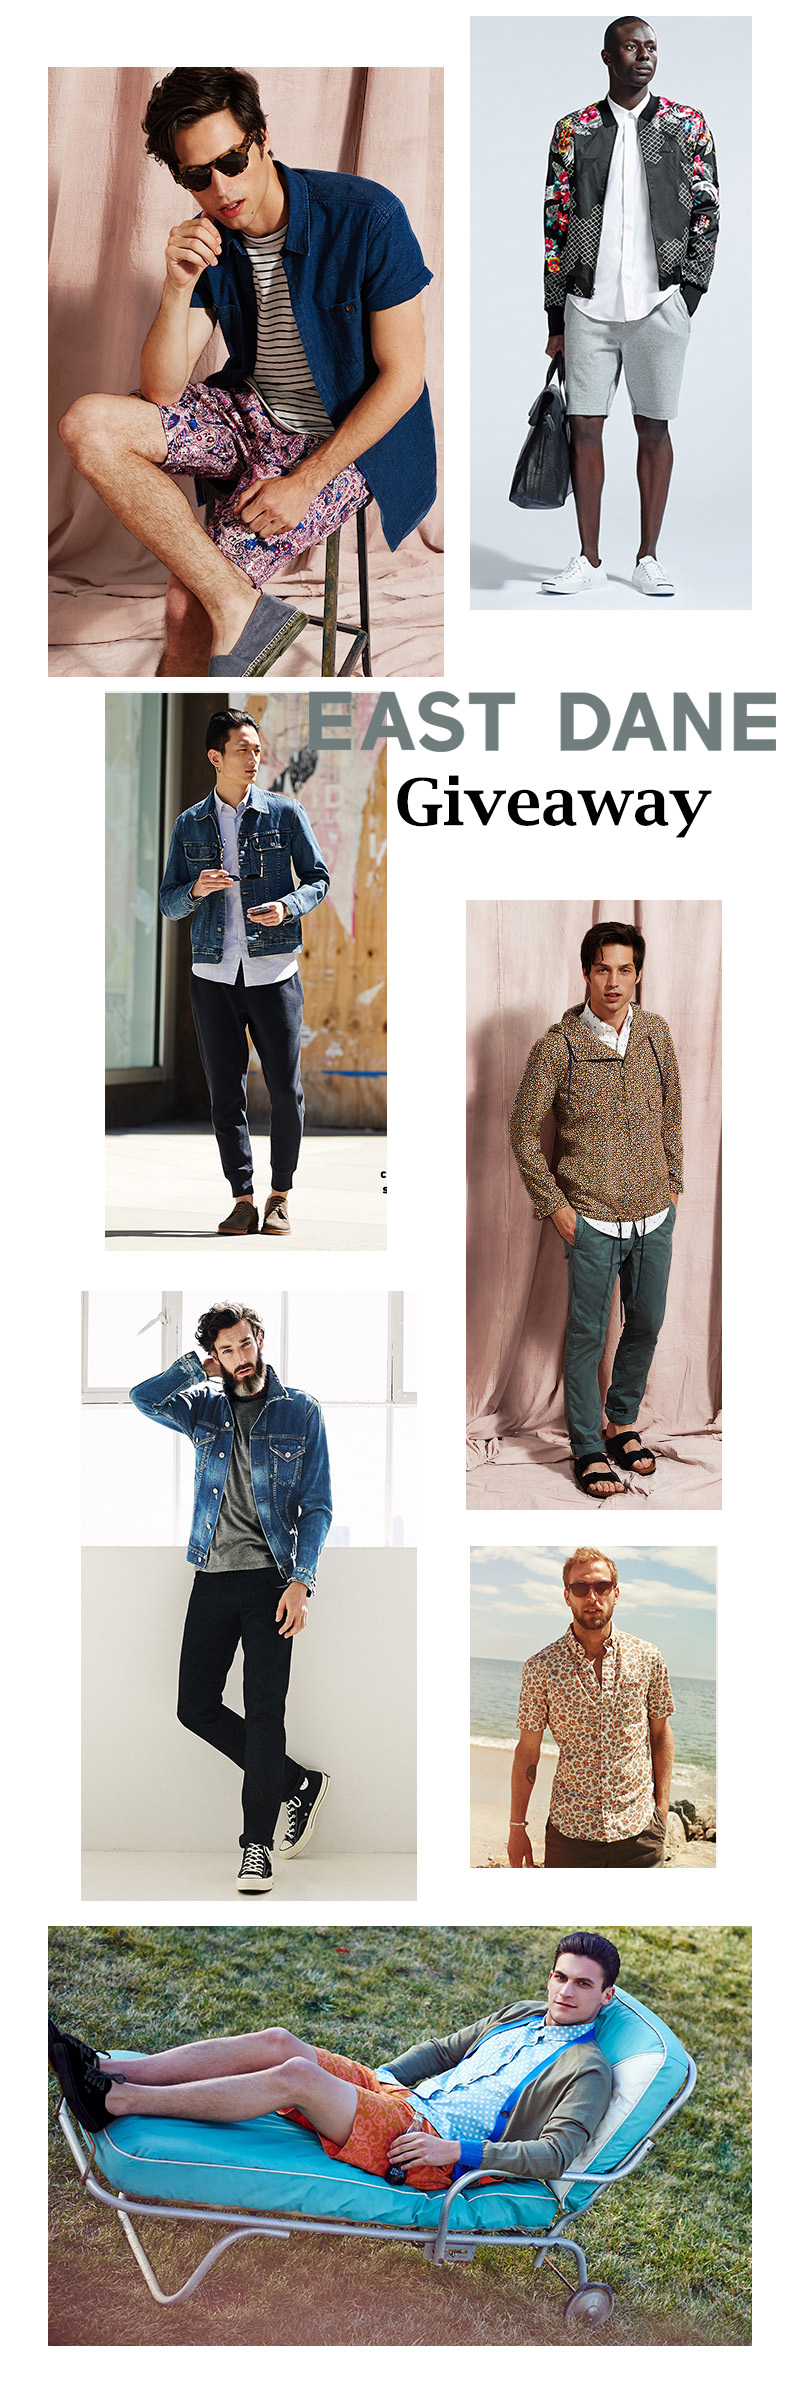 The Kentucky Gent with East Dane for a $200 Giveaway.